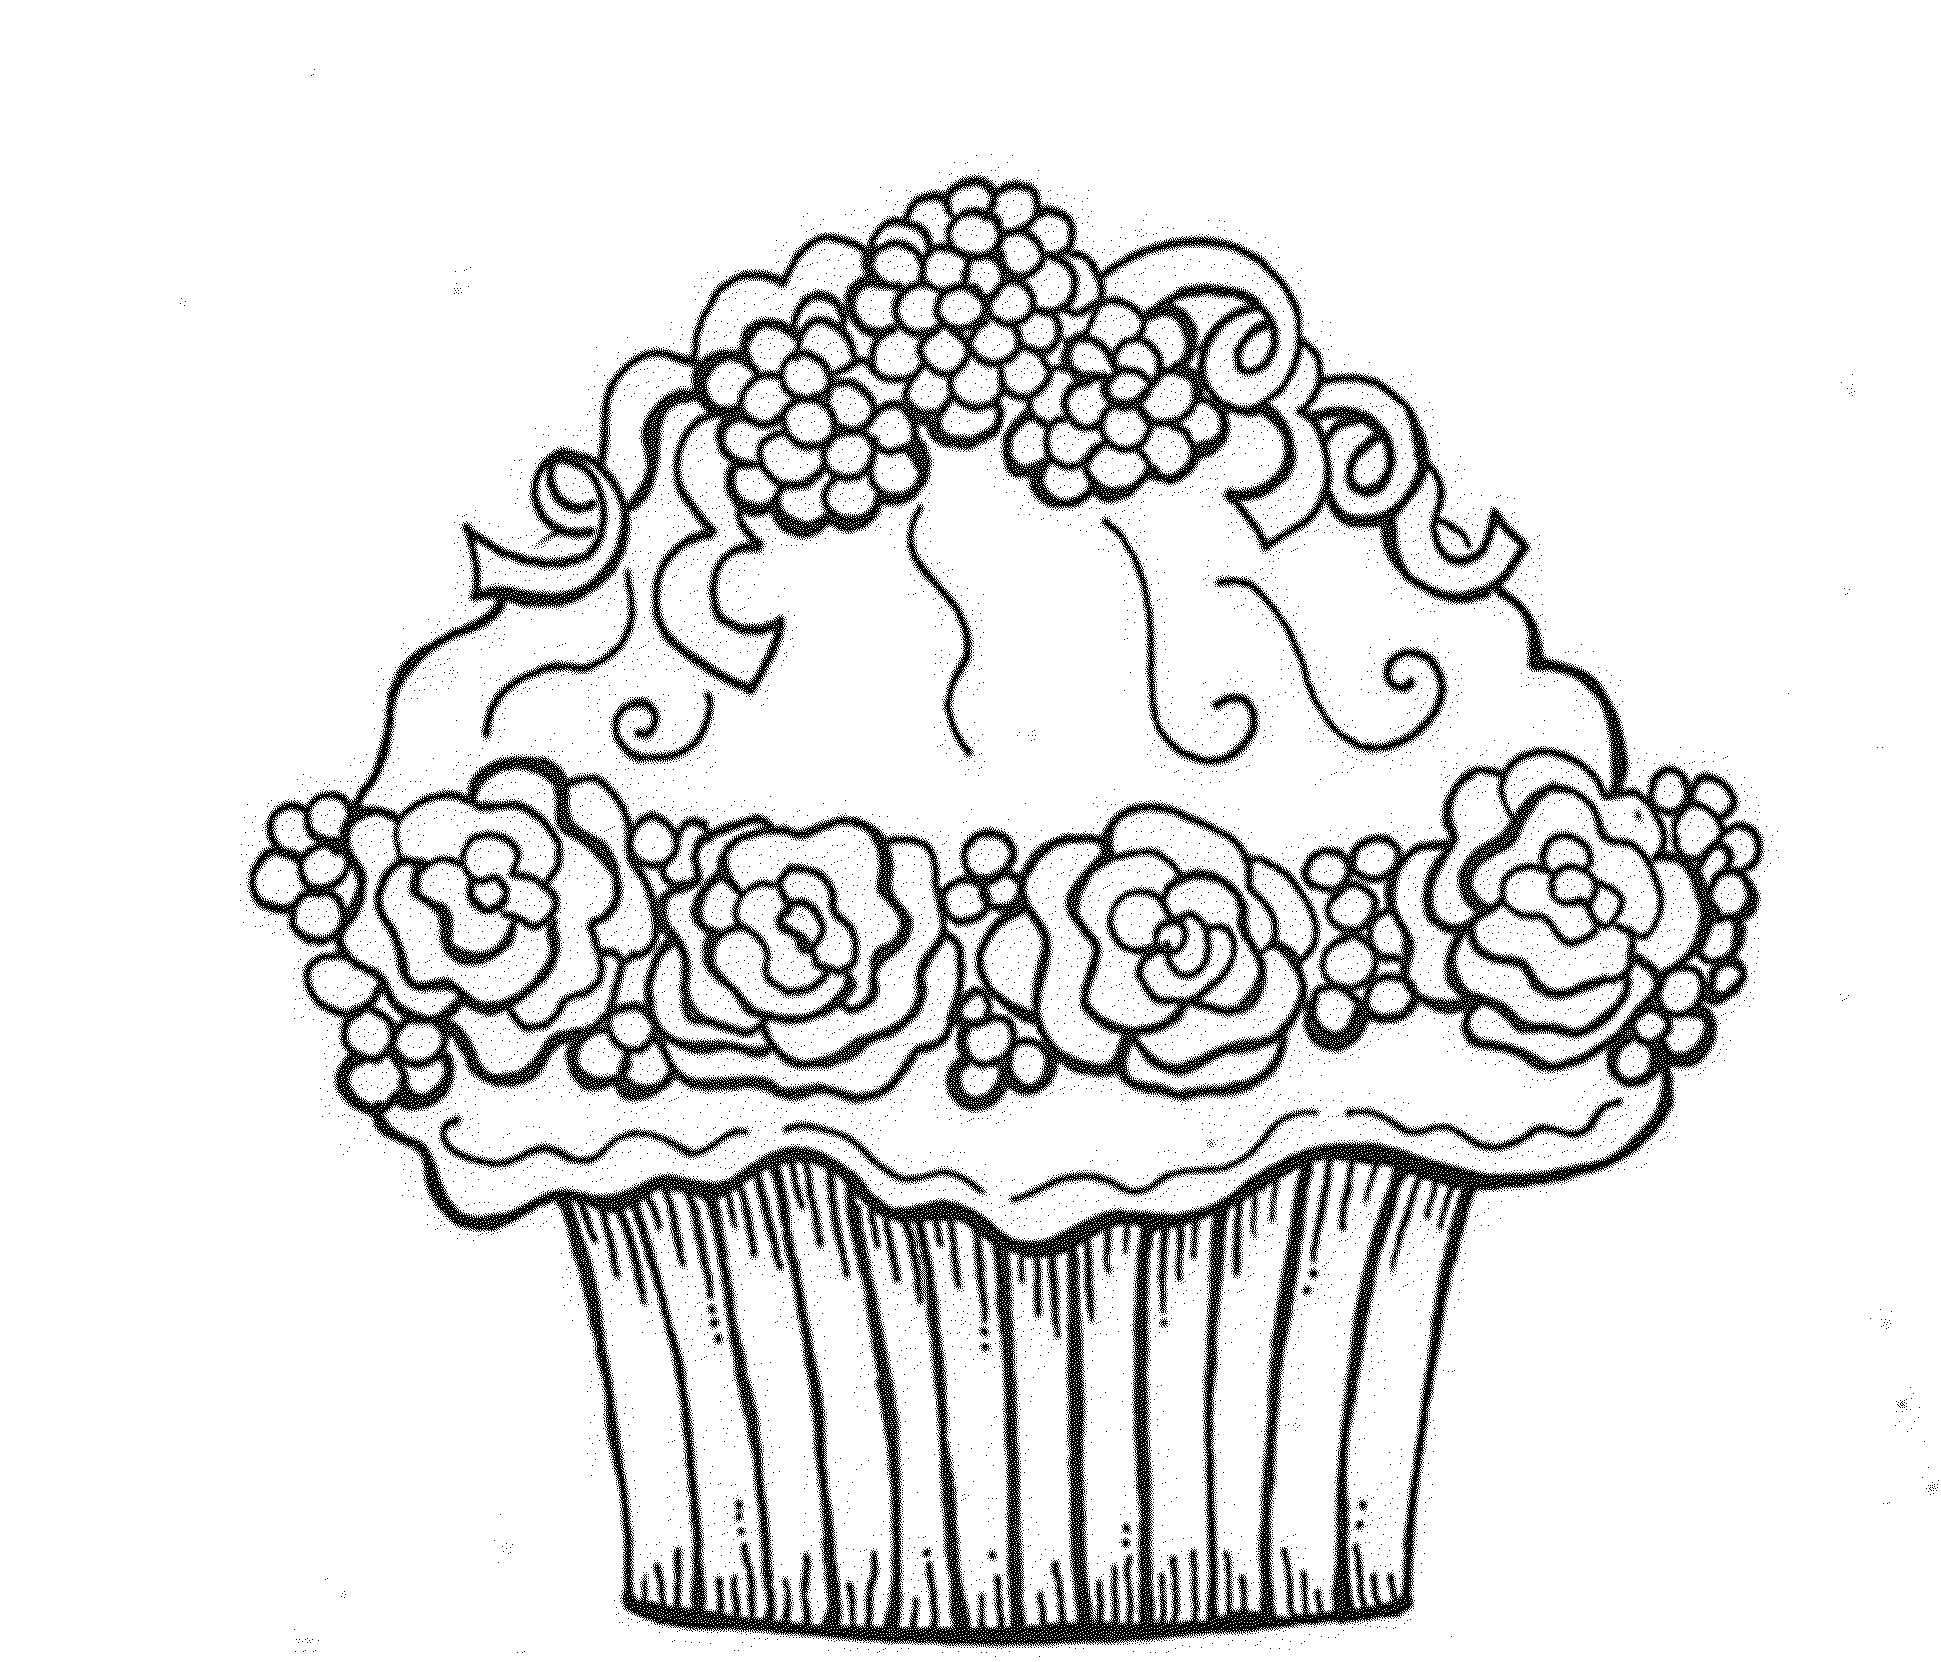 Coloring Pages Of Cupcakes Gallery Photos | Happy Birthday coloring ...